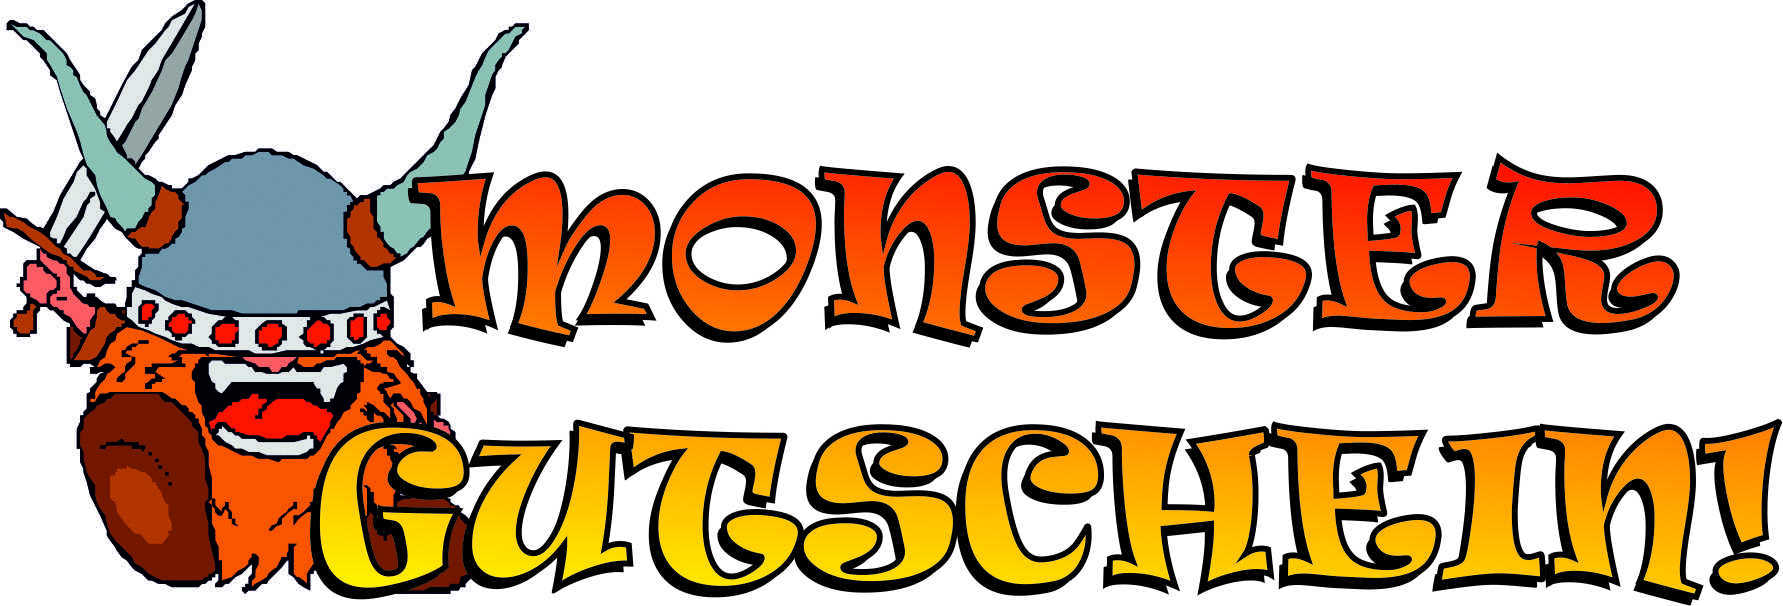 monstergutschein